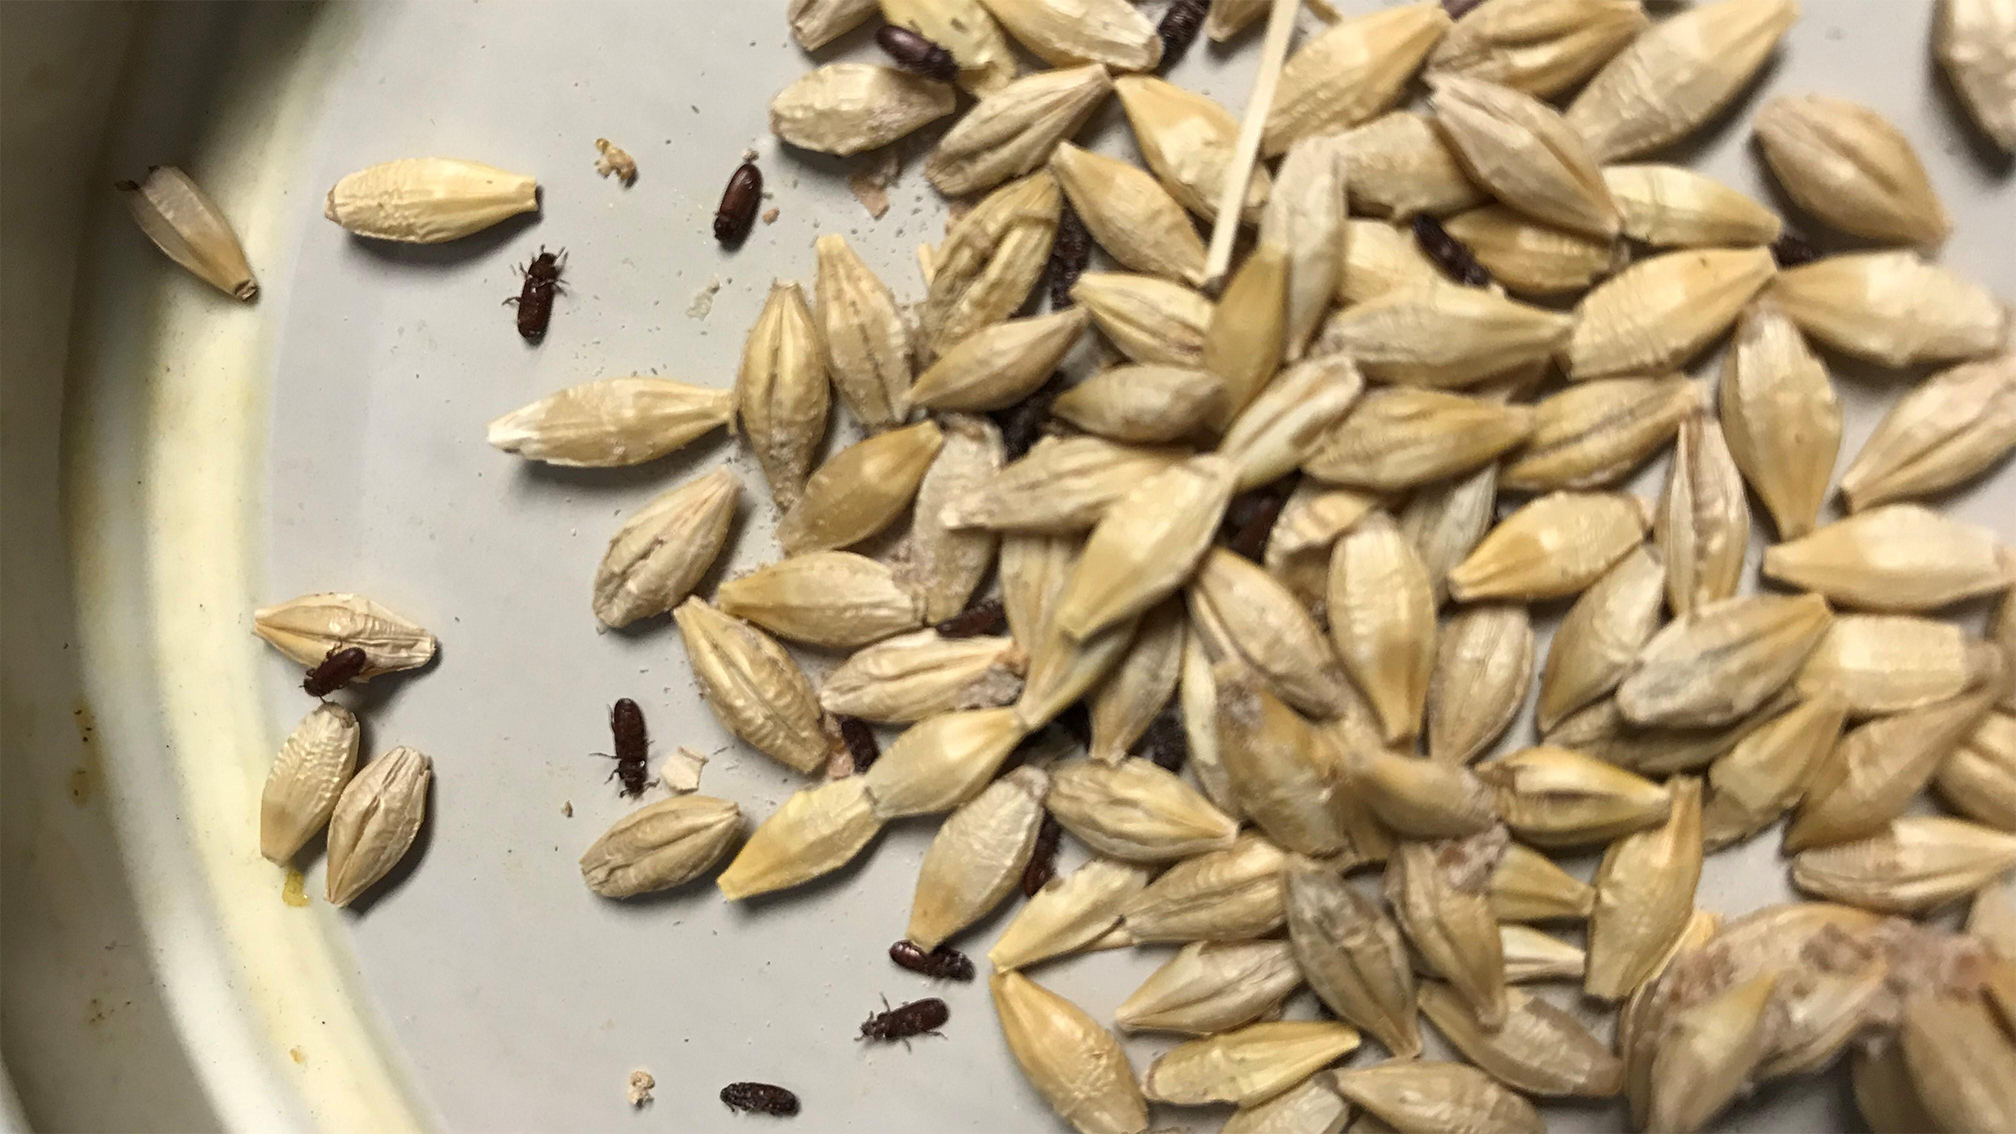 Signs of Insect Infestations in Stored Grains